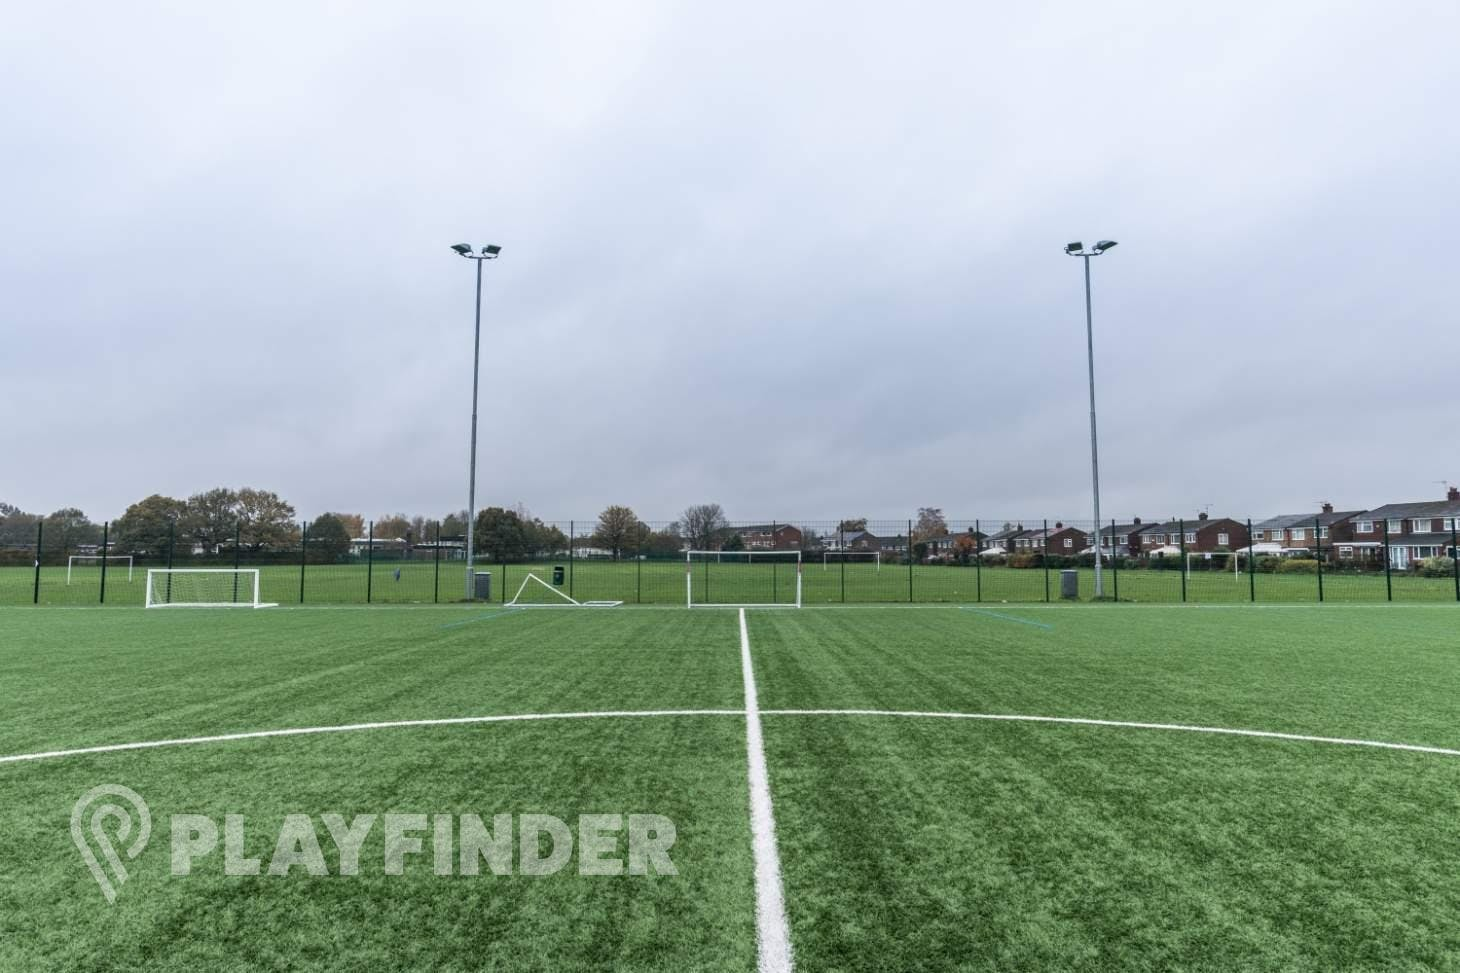 Hazel Grove Sports Centre 11 a side | 3G Astroturf football pitch